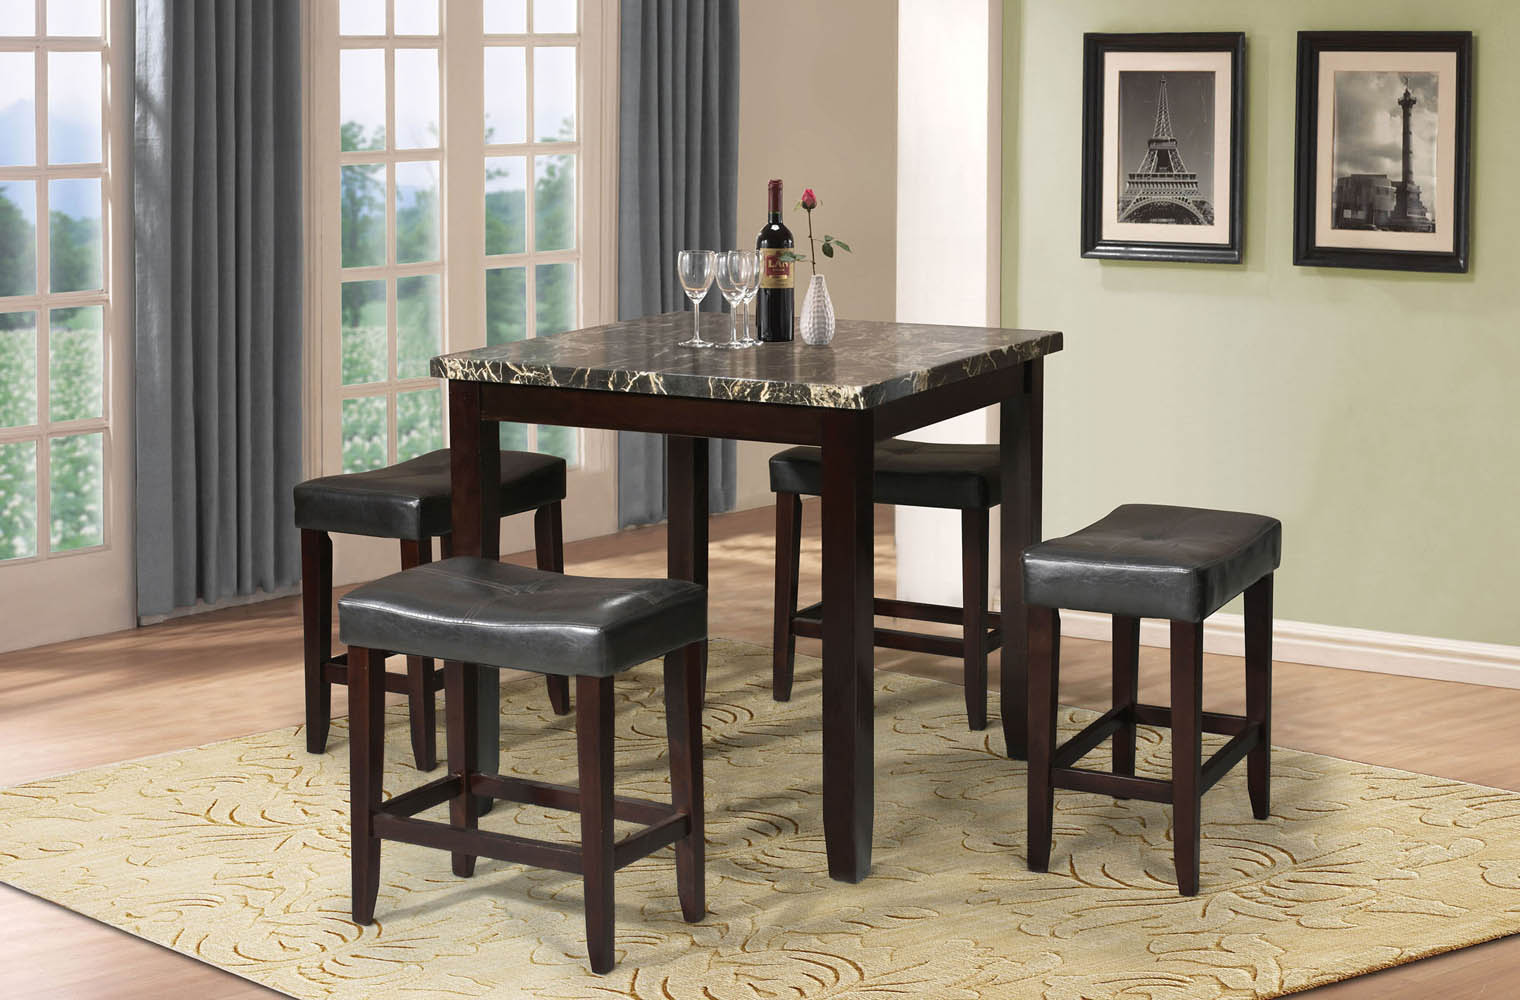 & 5 Piece Faux Marble Top Counter Height Table Set